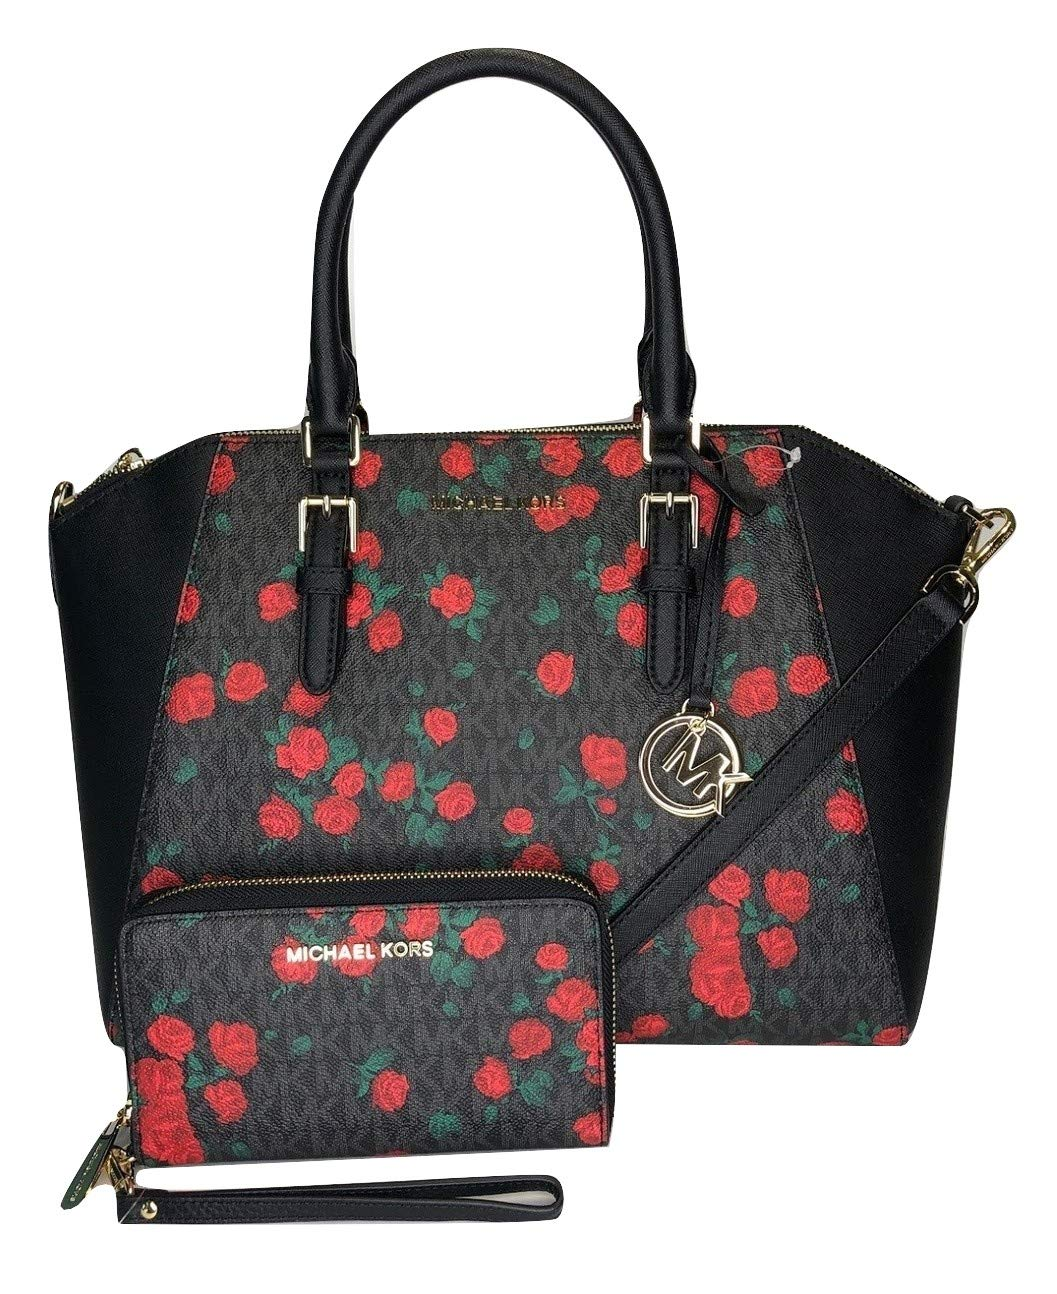 MICHAEL Michael Kors Ciara Large TZ Satchel bundled with Michael Kors Jet Set Travel Large Phone Wallet Wristlet (Signature MK Black/Red Roses)